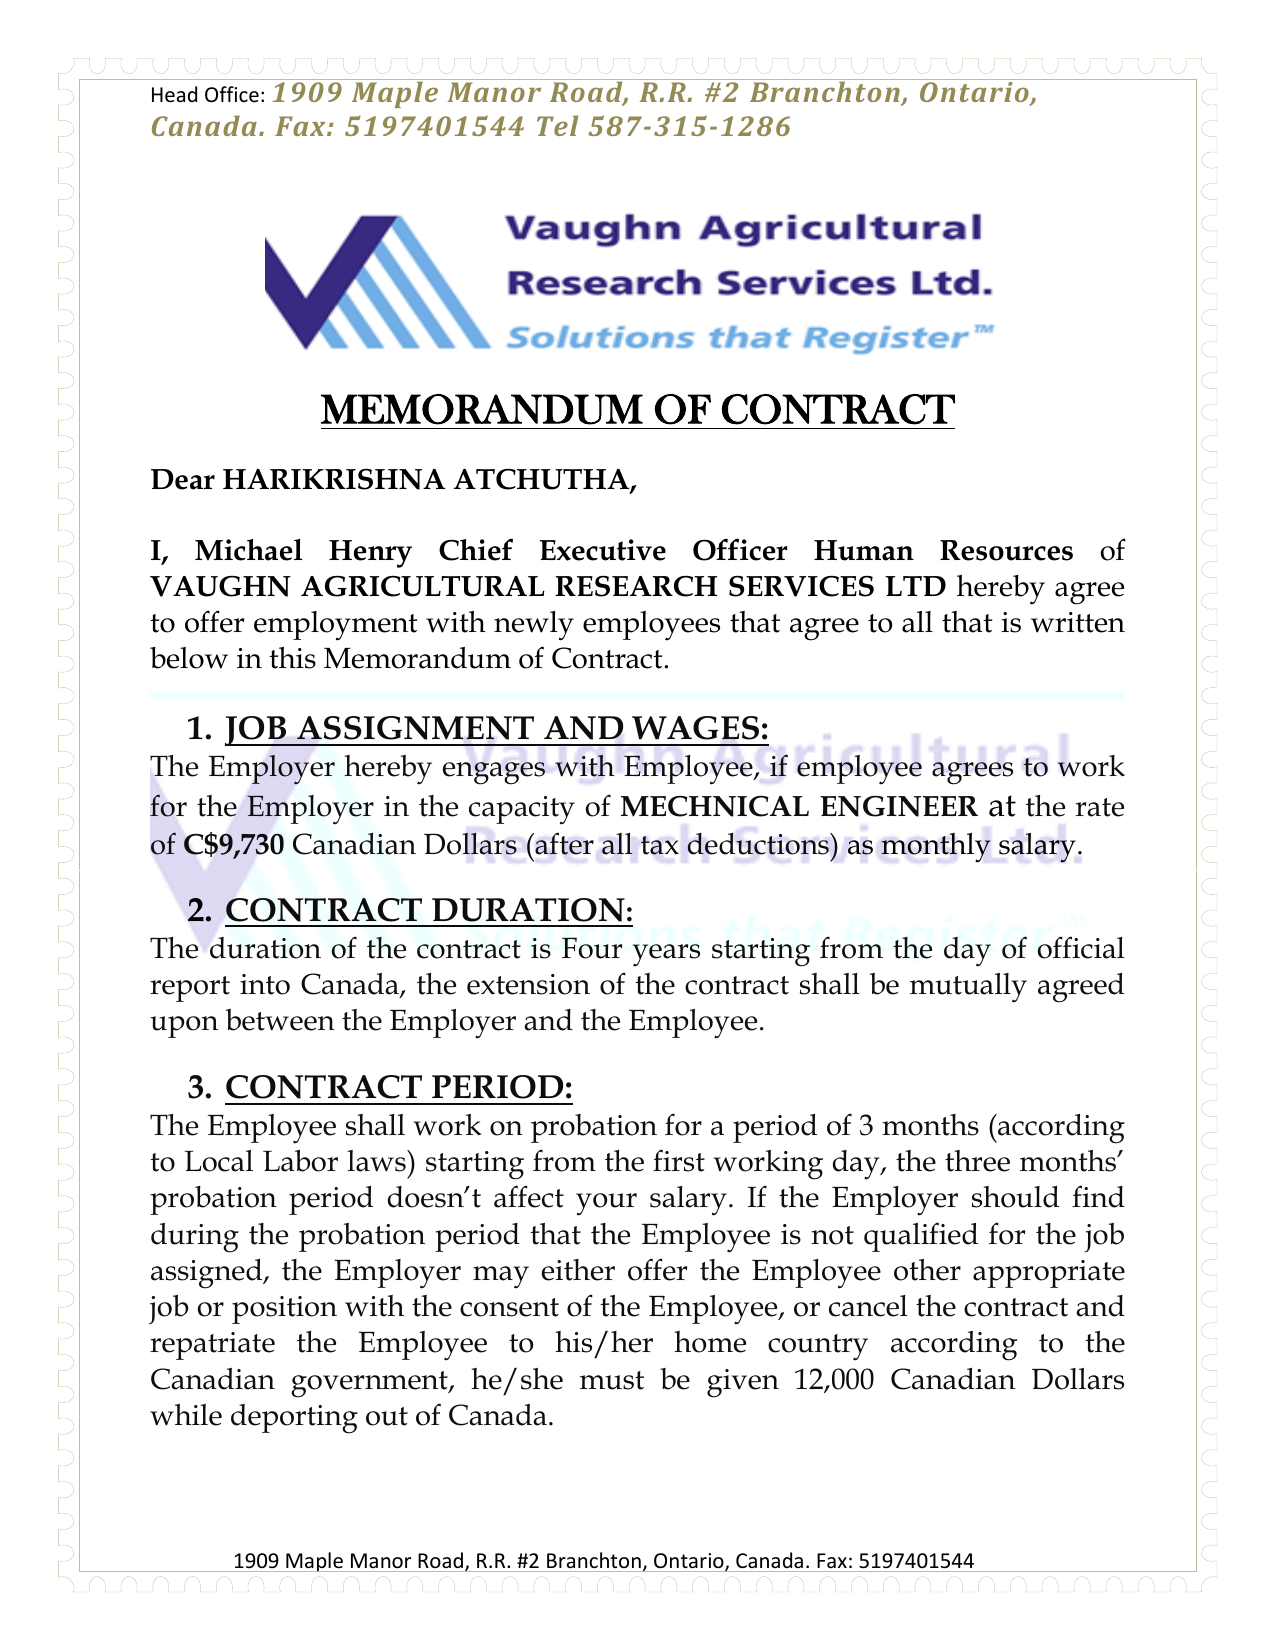 CONTRACT AGREEMENT LETTER FROM VAUGHN AGRICULTURAL RESEARCH SERVICES